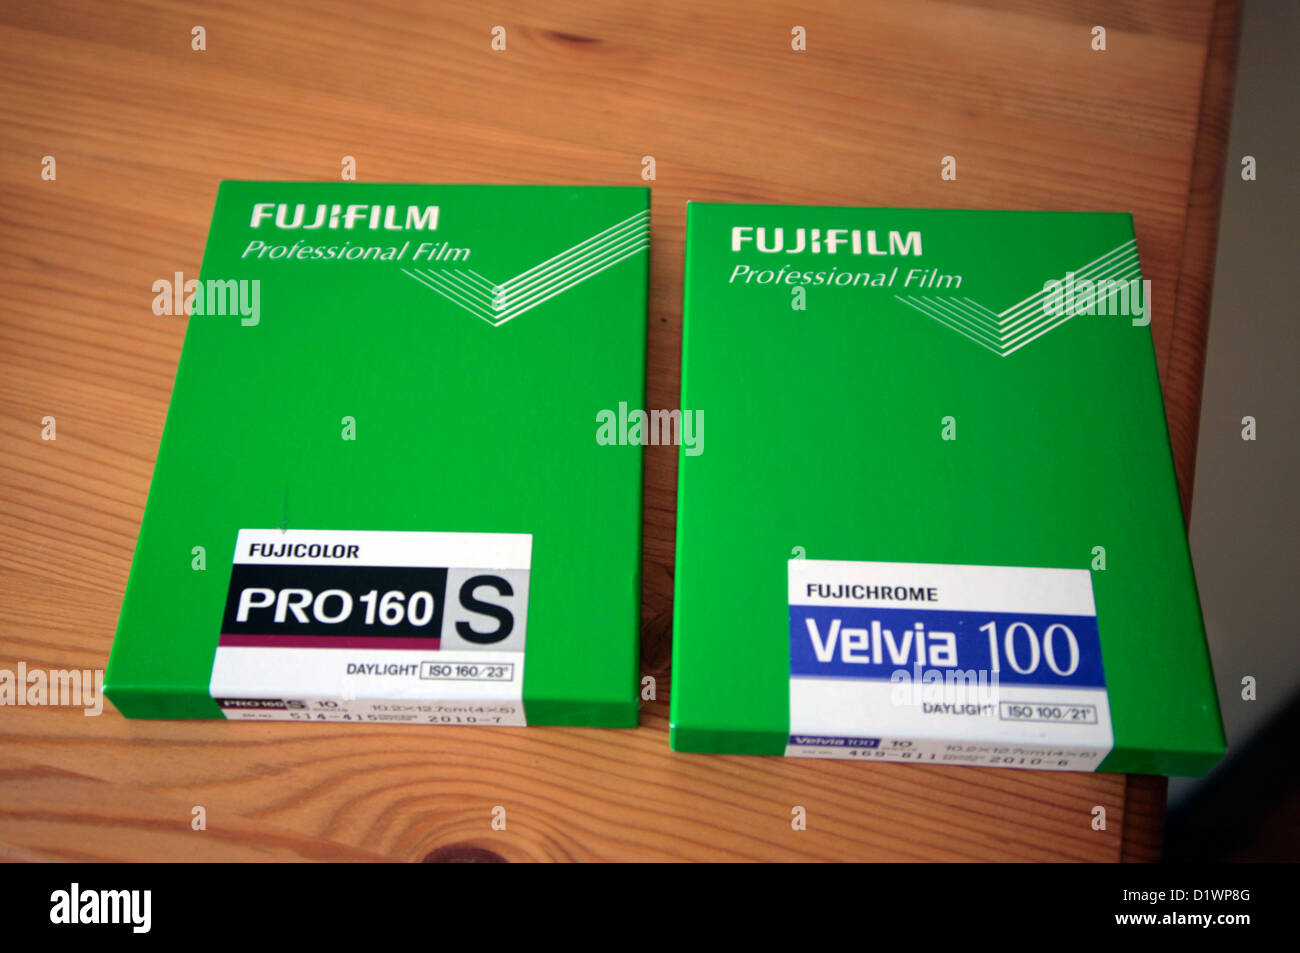 2 boxes of Fuji large format film. - Stock Image